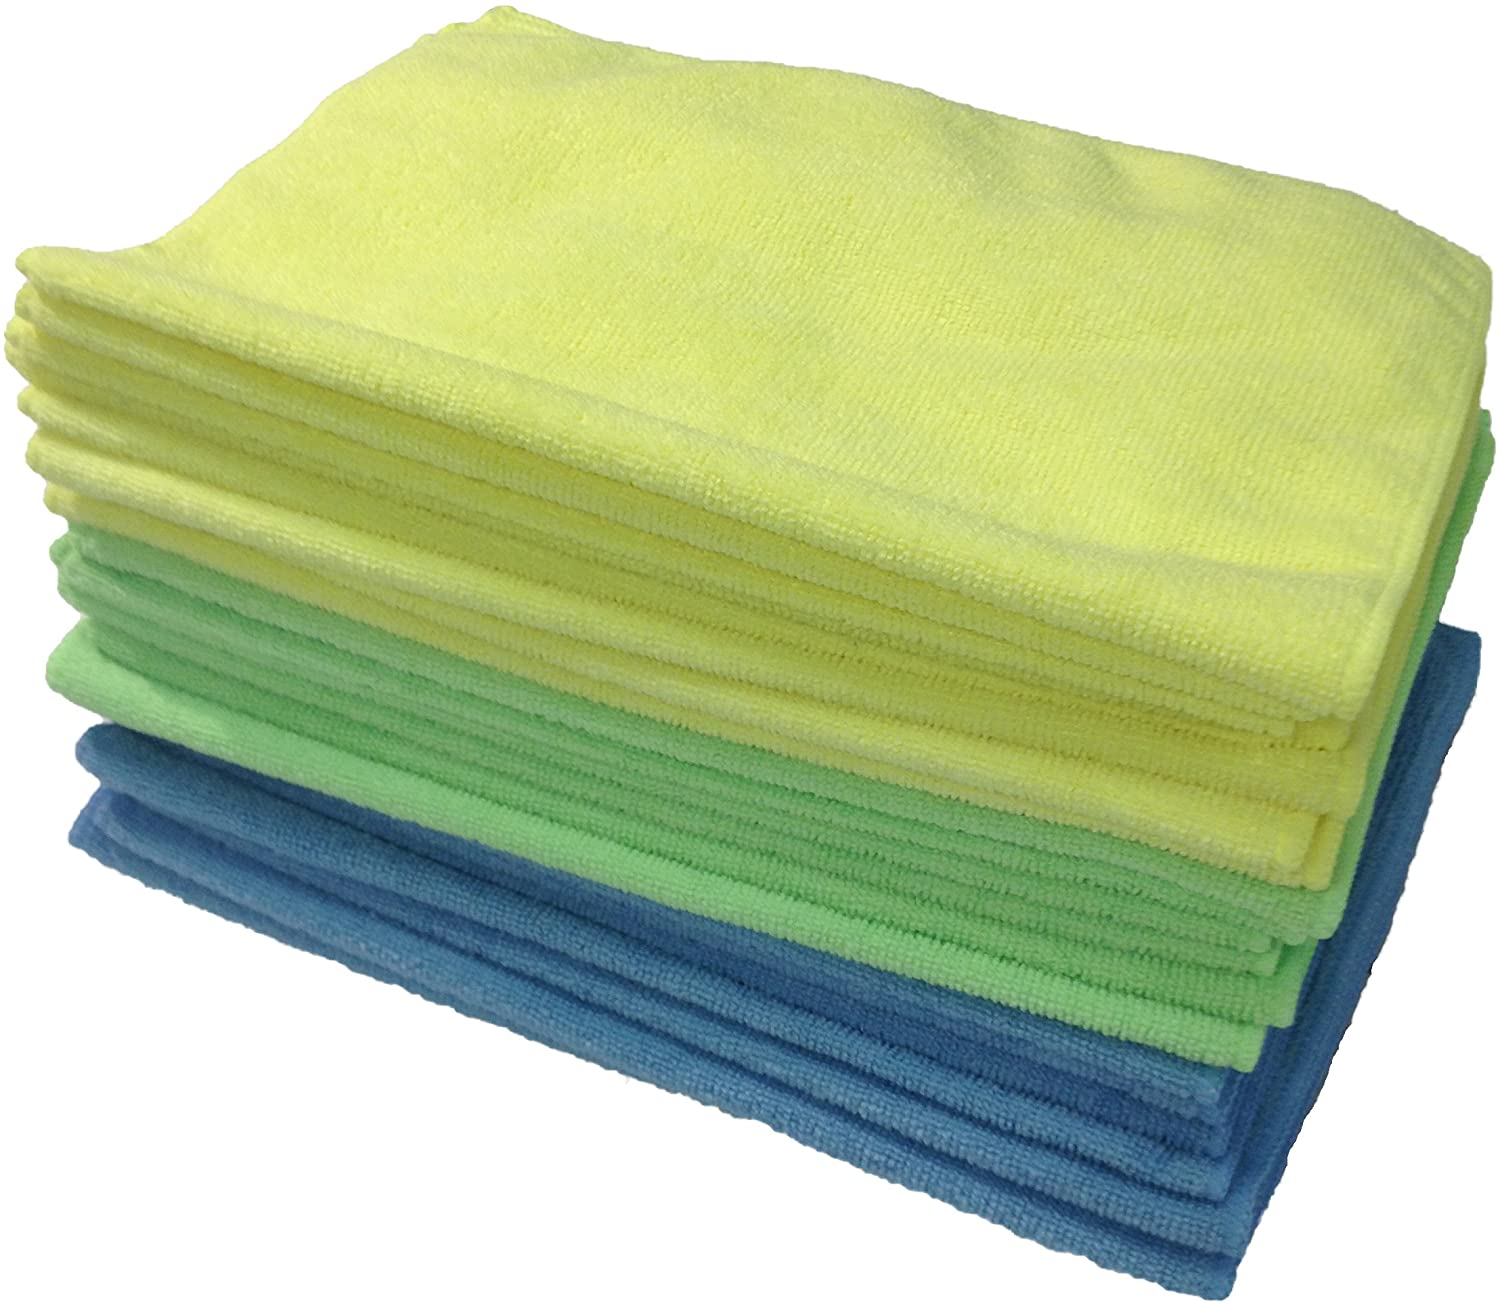 Zwipes Microfiber Cleaning Cloths (24-Pack) $14.99